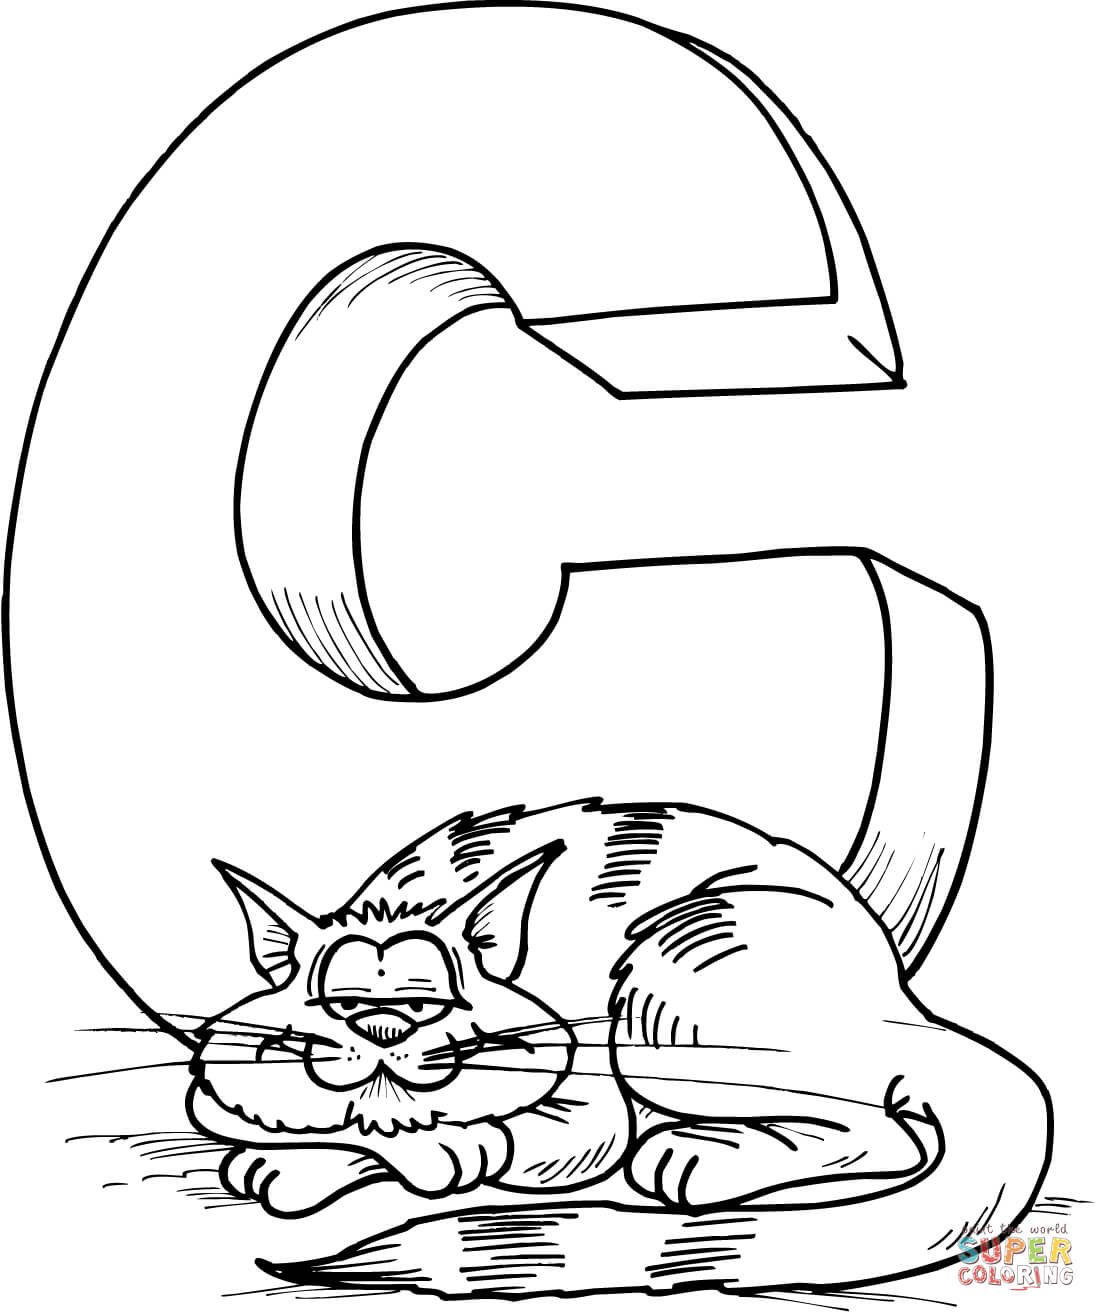 c for coloring page letter c is for camel coloring page free printable page coloring c for